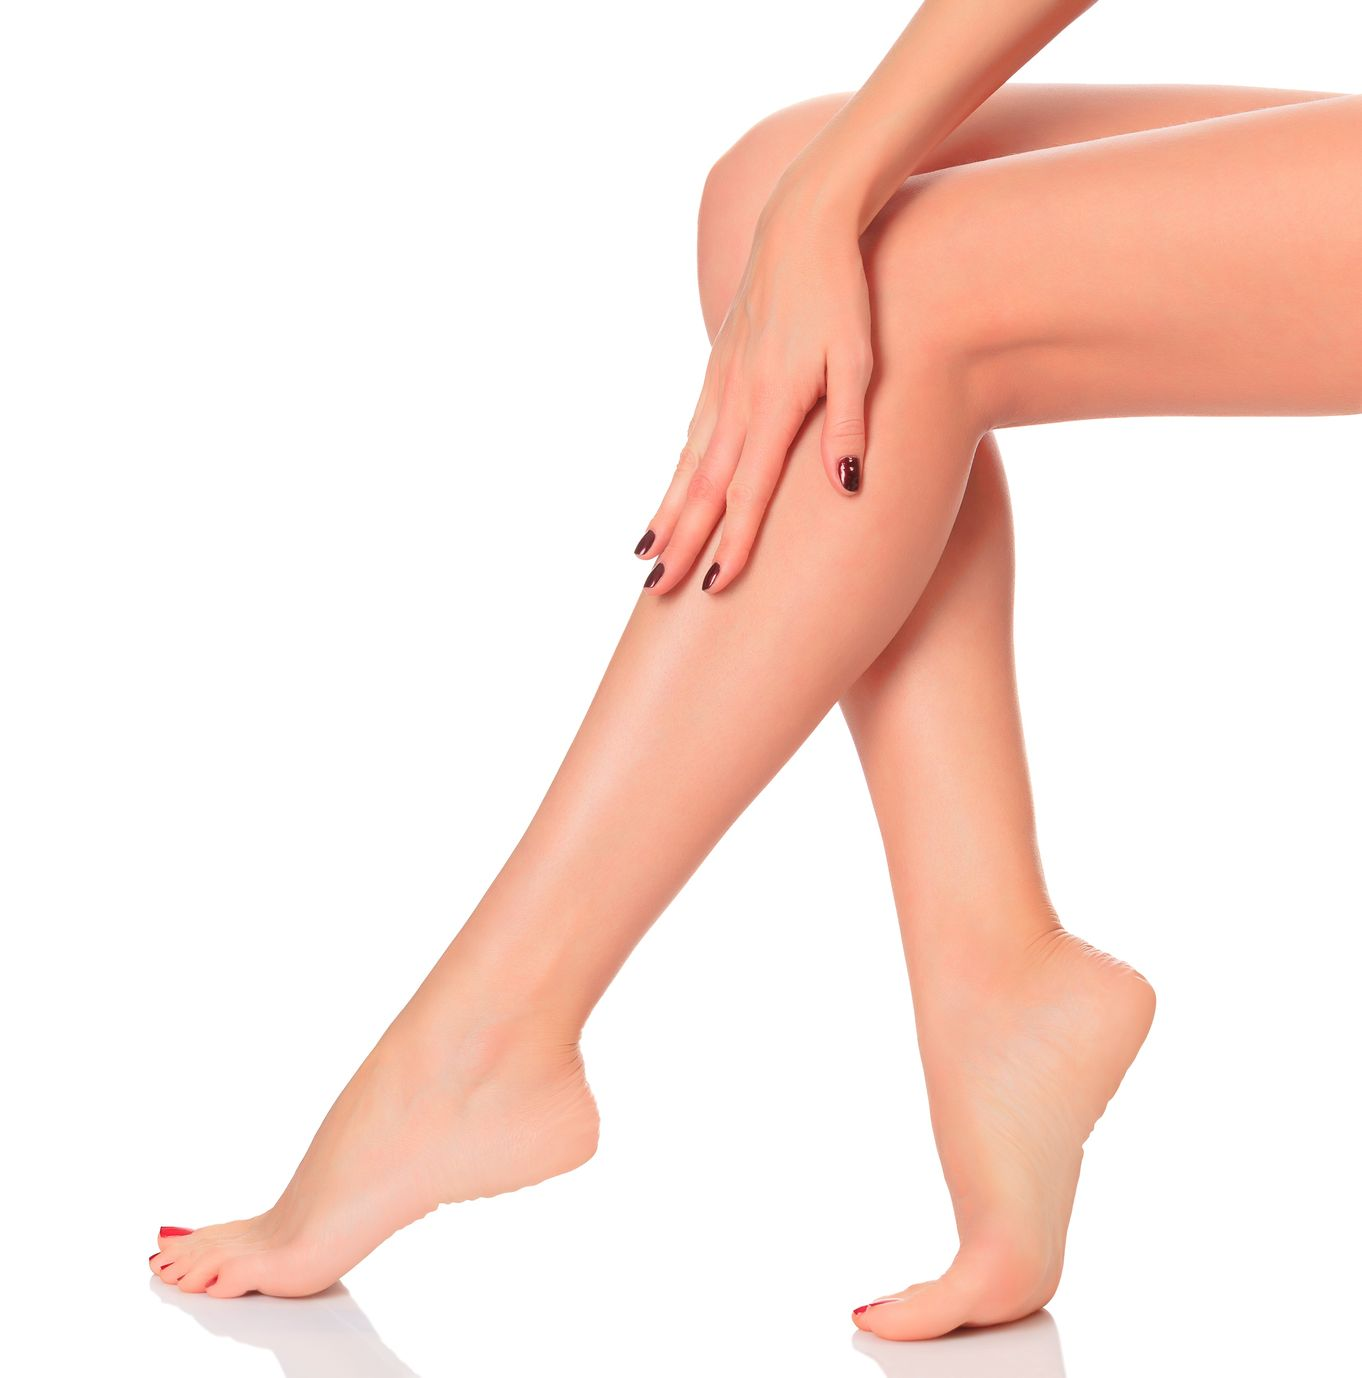 laser hair removal Beaumont TX, laser hair removal Southeast Texas, SETX laser hair removal, Golden Triangle spa services, spa gift certificate Beaumont TX